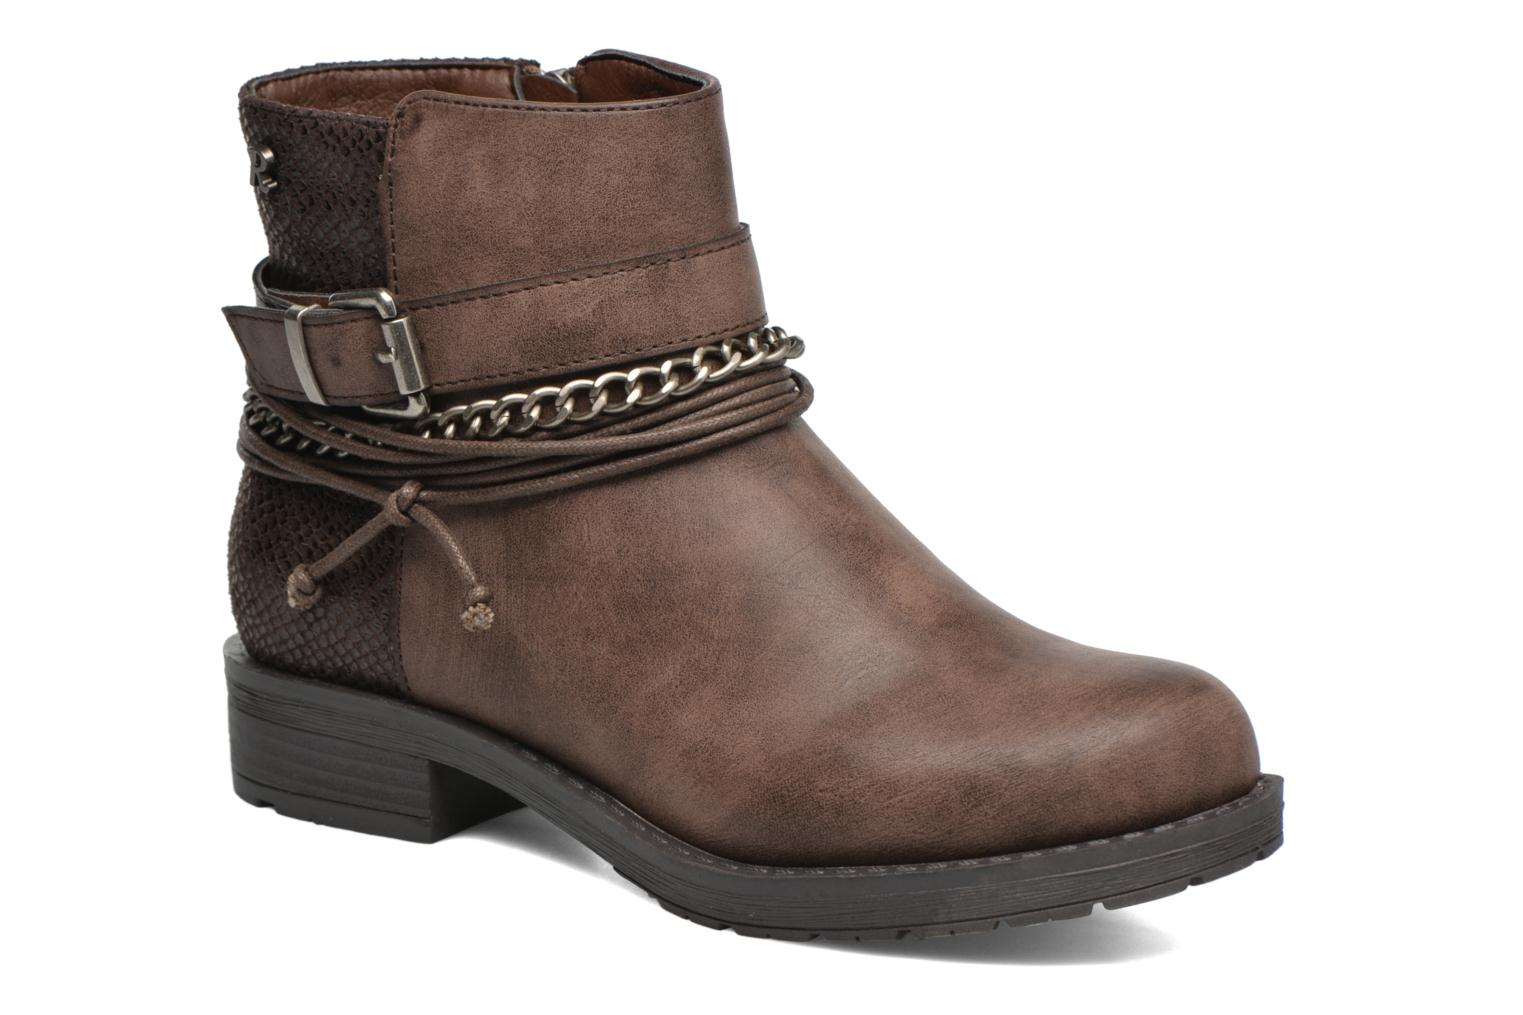 Bottines et boots Refresh Doune 62129 Marron vue détail/paire